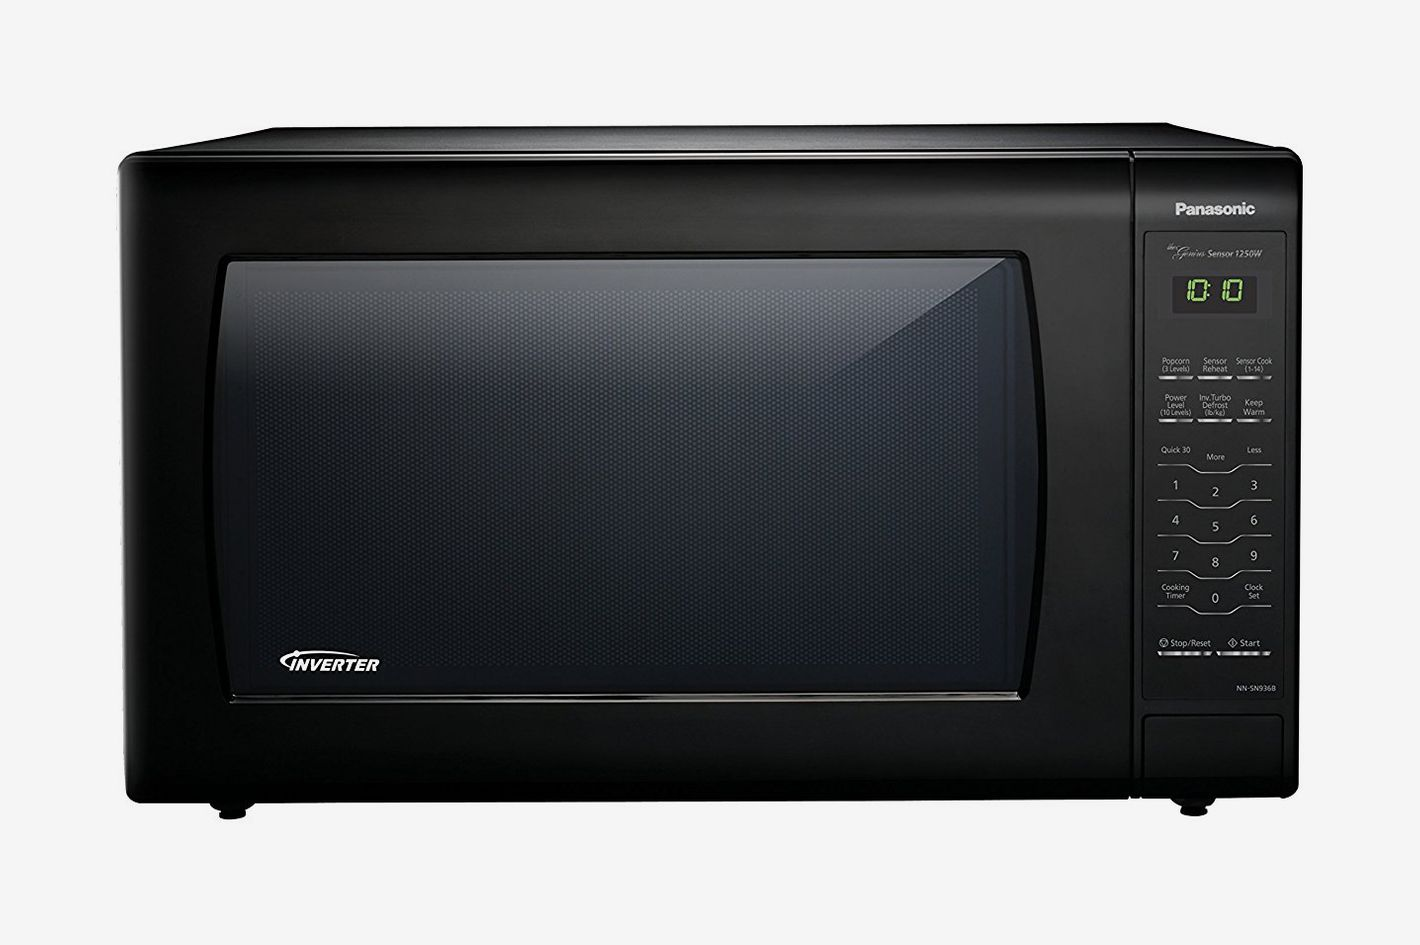 Panasonic Nn Sn936b Countertop Microwave With Inverter Technology